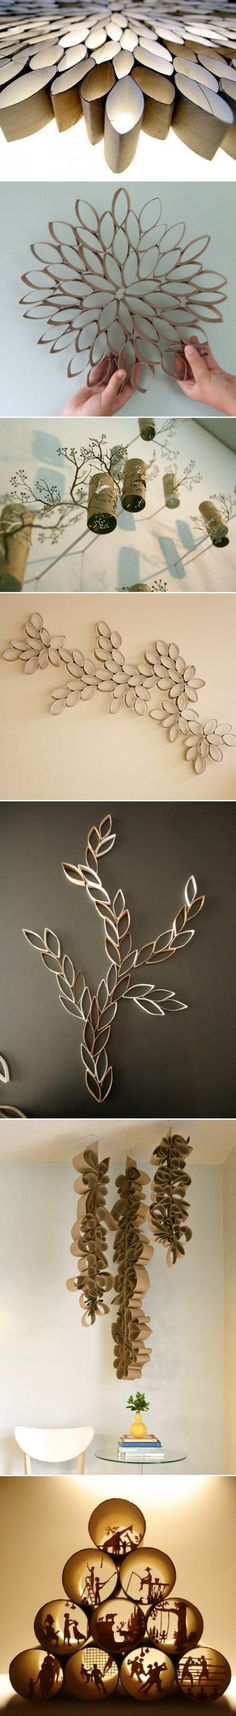 Diy idea how to make tutorial decorations with toilette paper rolls